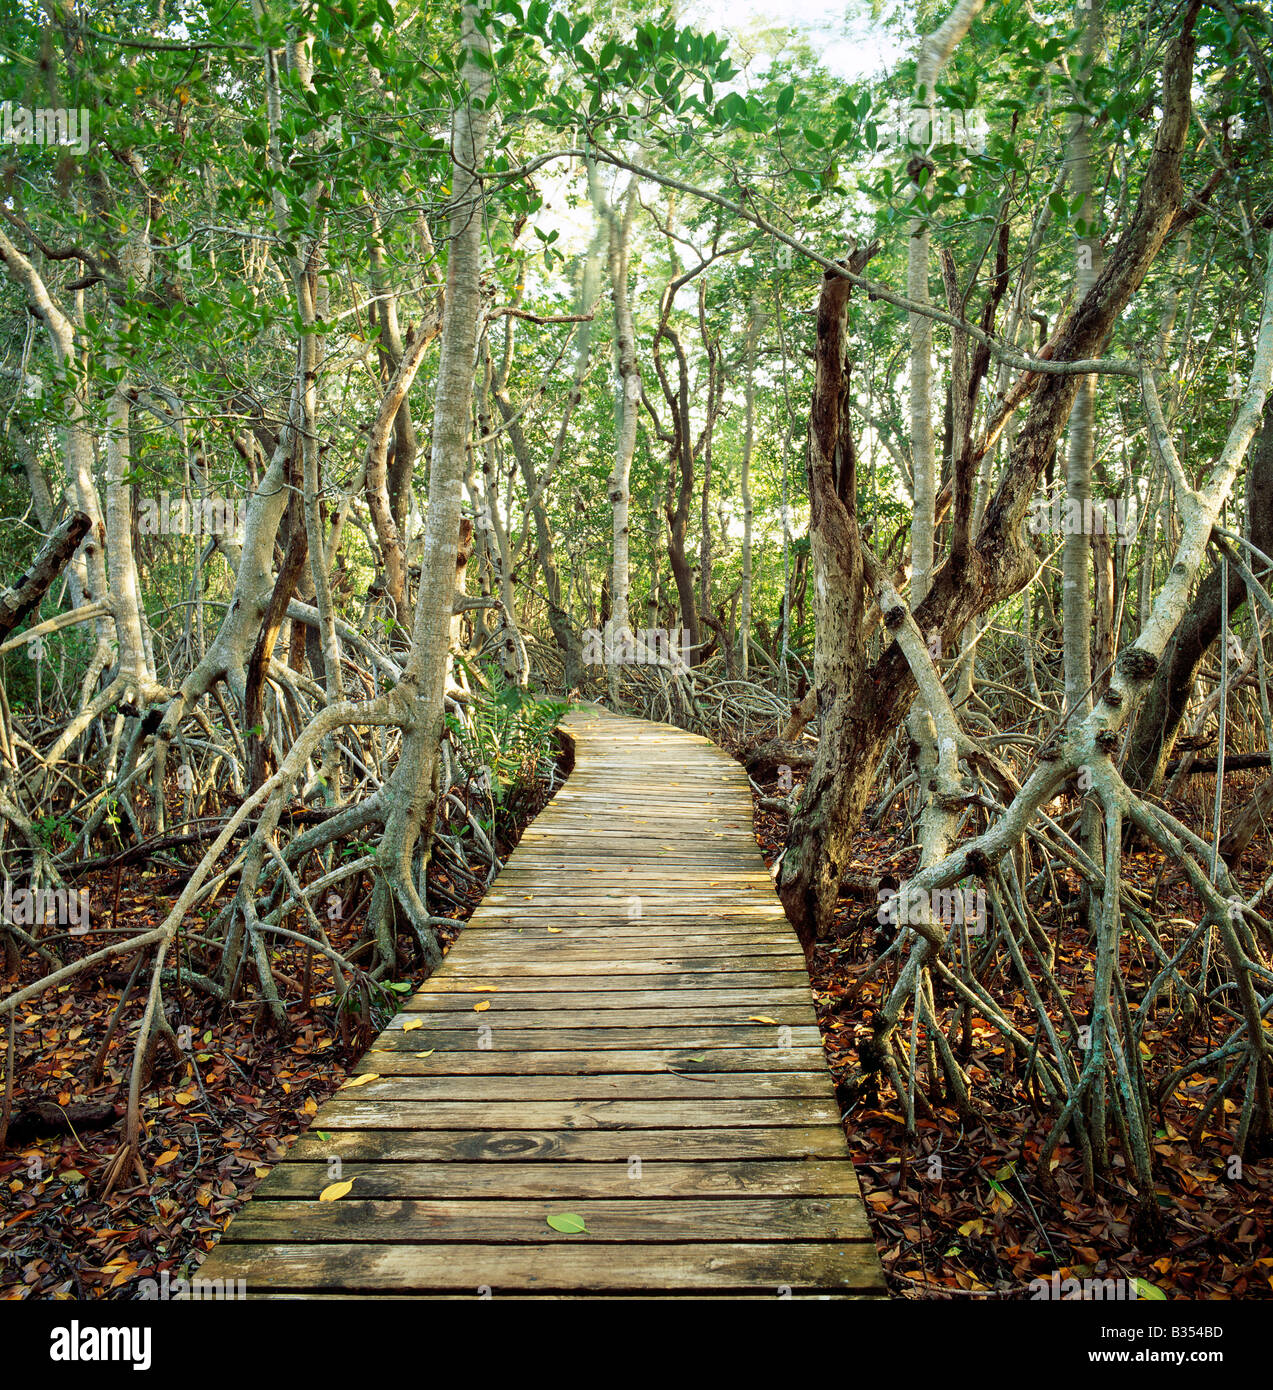 Promenade en bois, J.N. 'Ding' Darling National Wildlife Refuge, Sanibel Island, Floride, USA Photo Stock